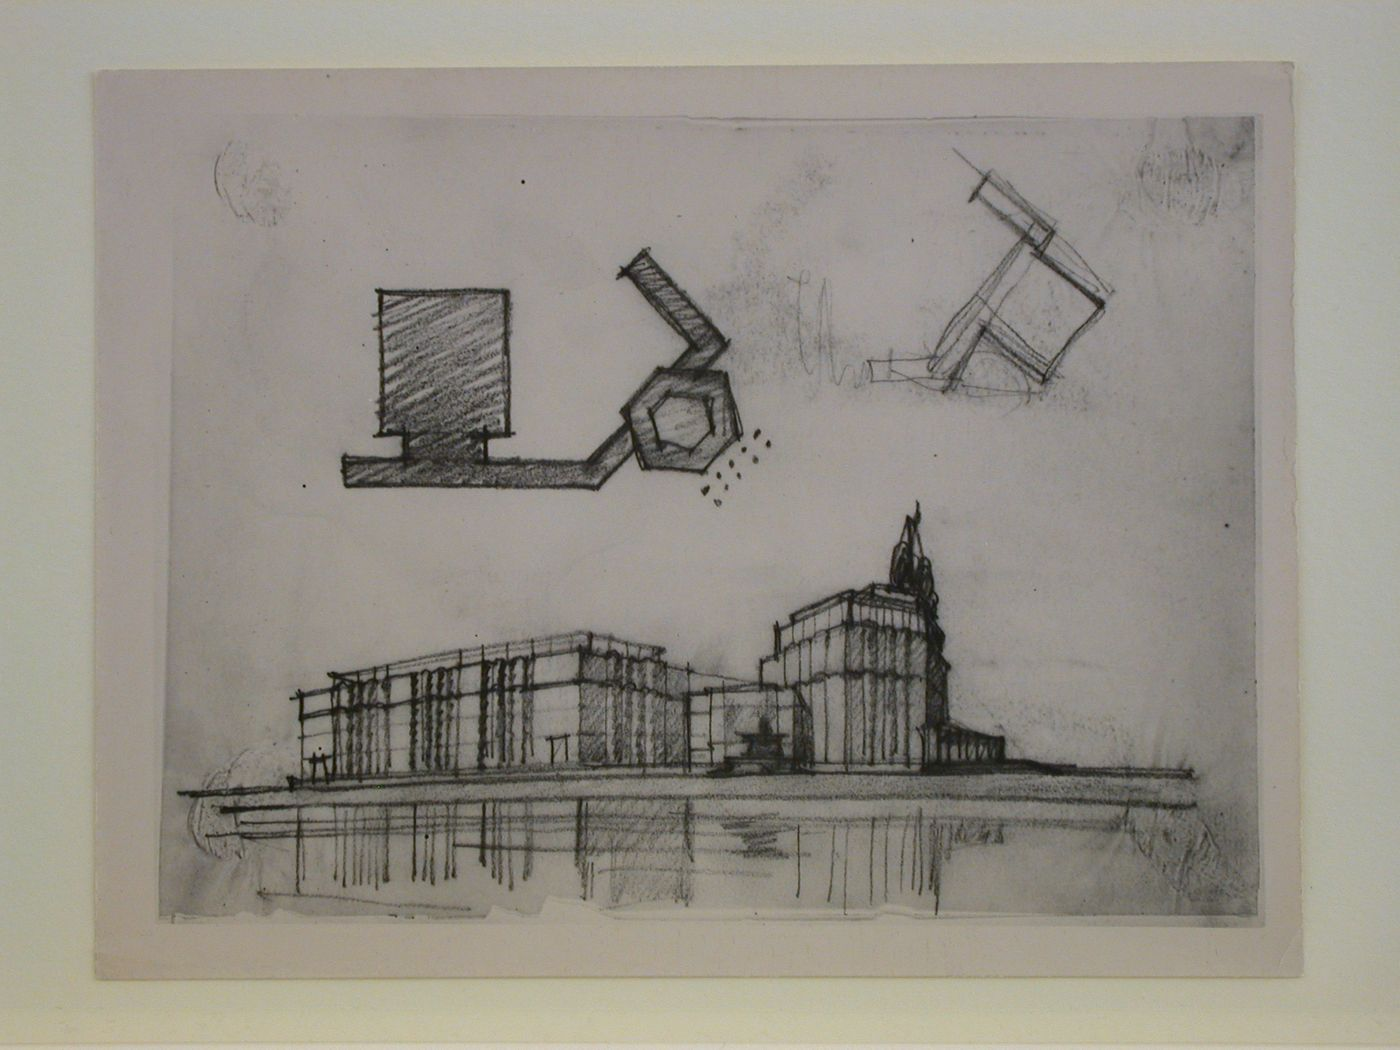 Photograph of a plans and perspective sketches for the Izvestiia newspaper combine, Moscow